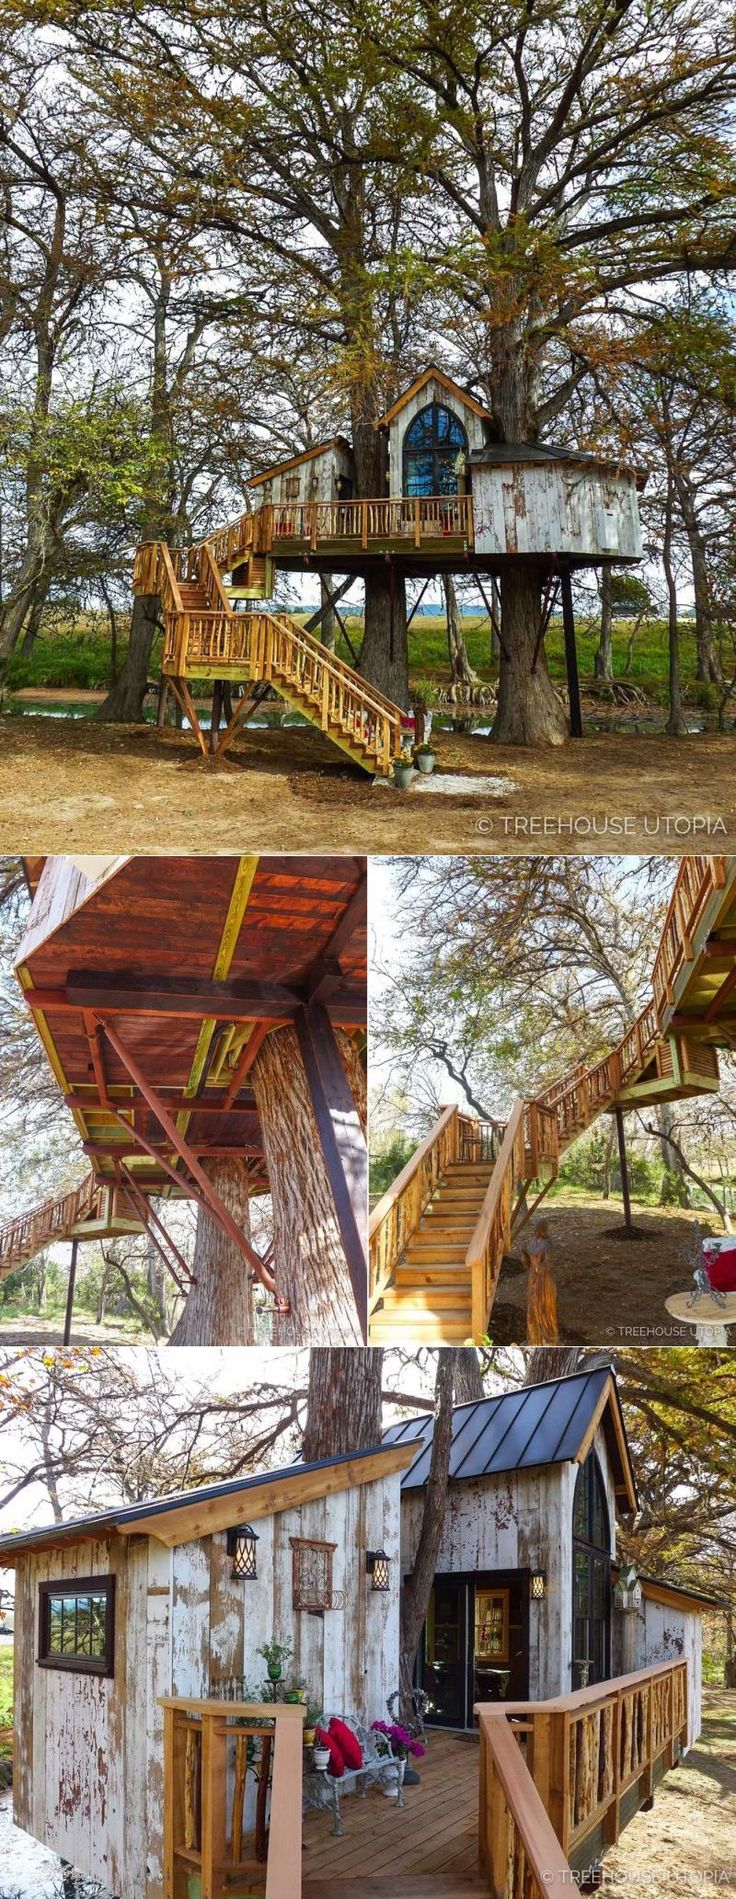 Treehouse Utopia Pete Nelson's Vacation Retreat for